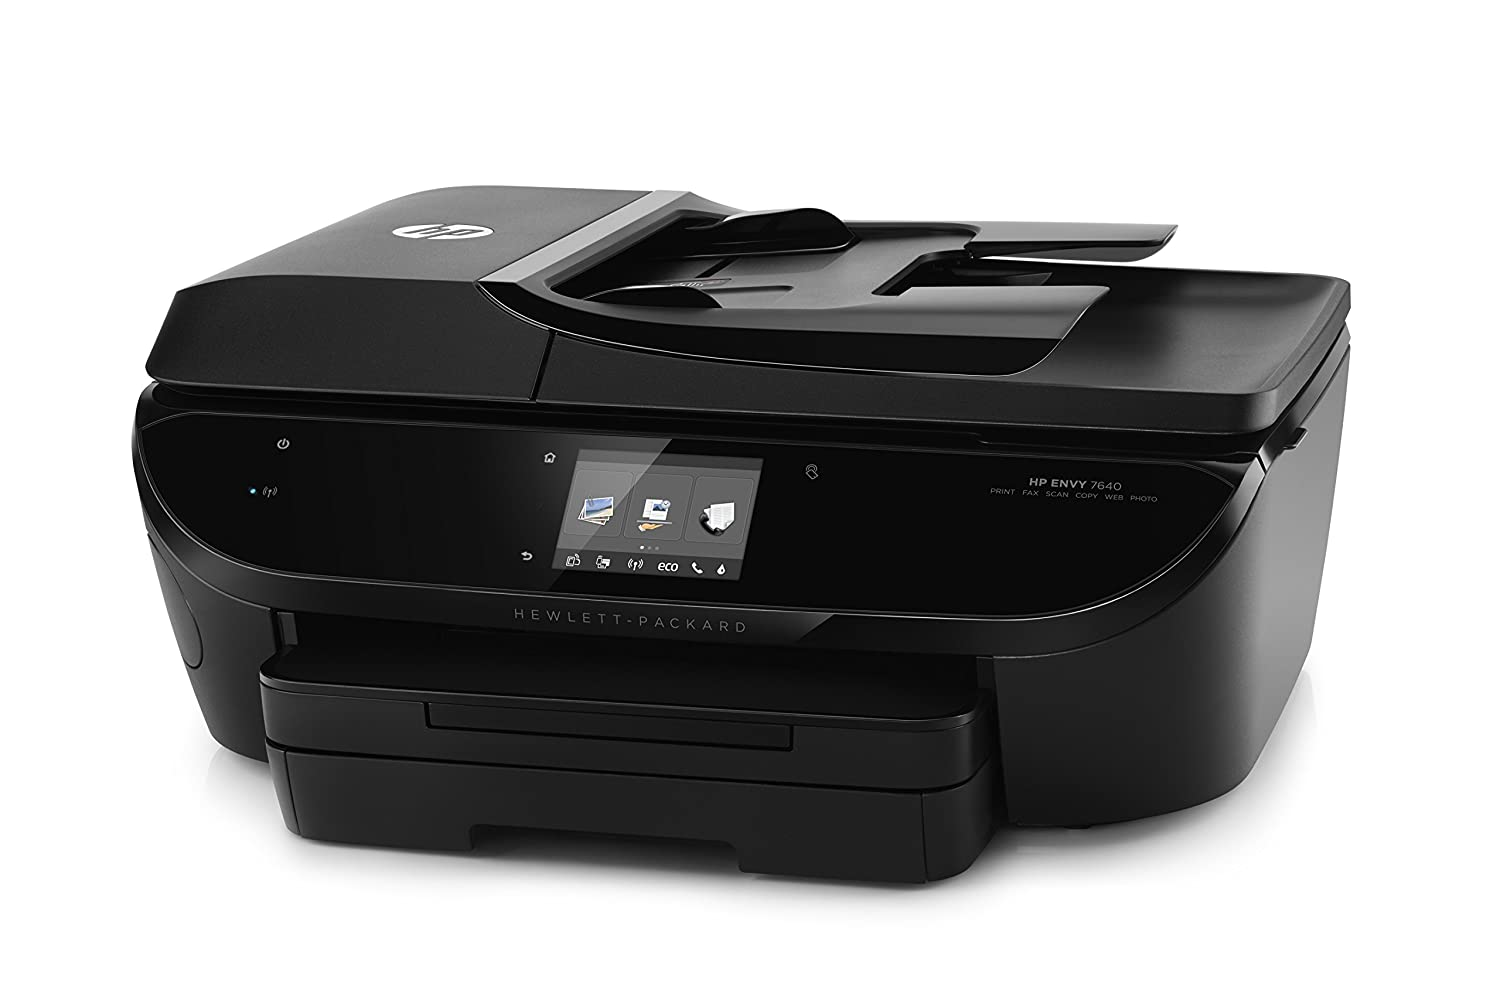 amazon com hp envy 7640 wireless all in one photo printer with rh amazon com hp officejet 4500 wireless manual español hp officejet 4500 wireless manuel